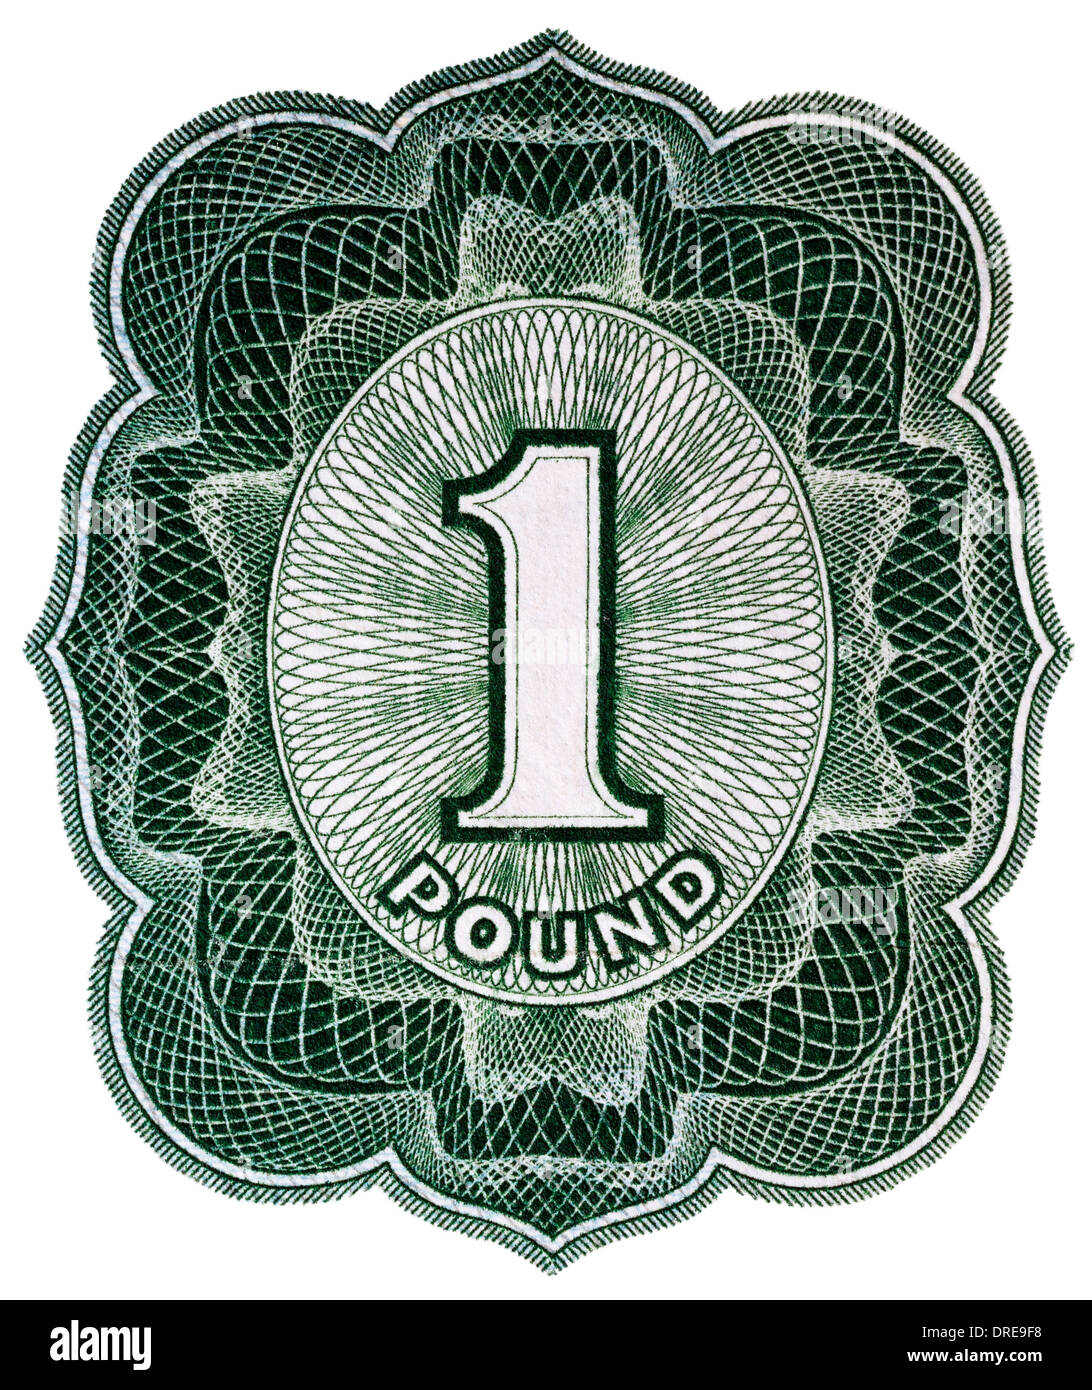 Number 1 from 1 Pound banknote, UK, 1955 - Stock Image